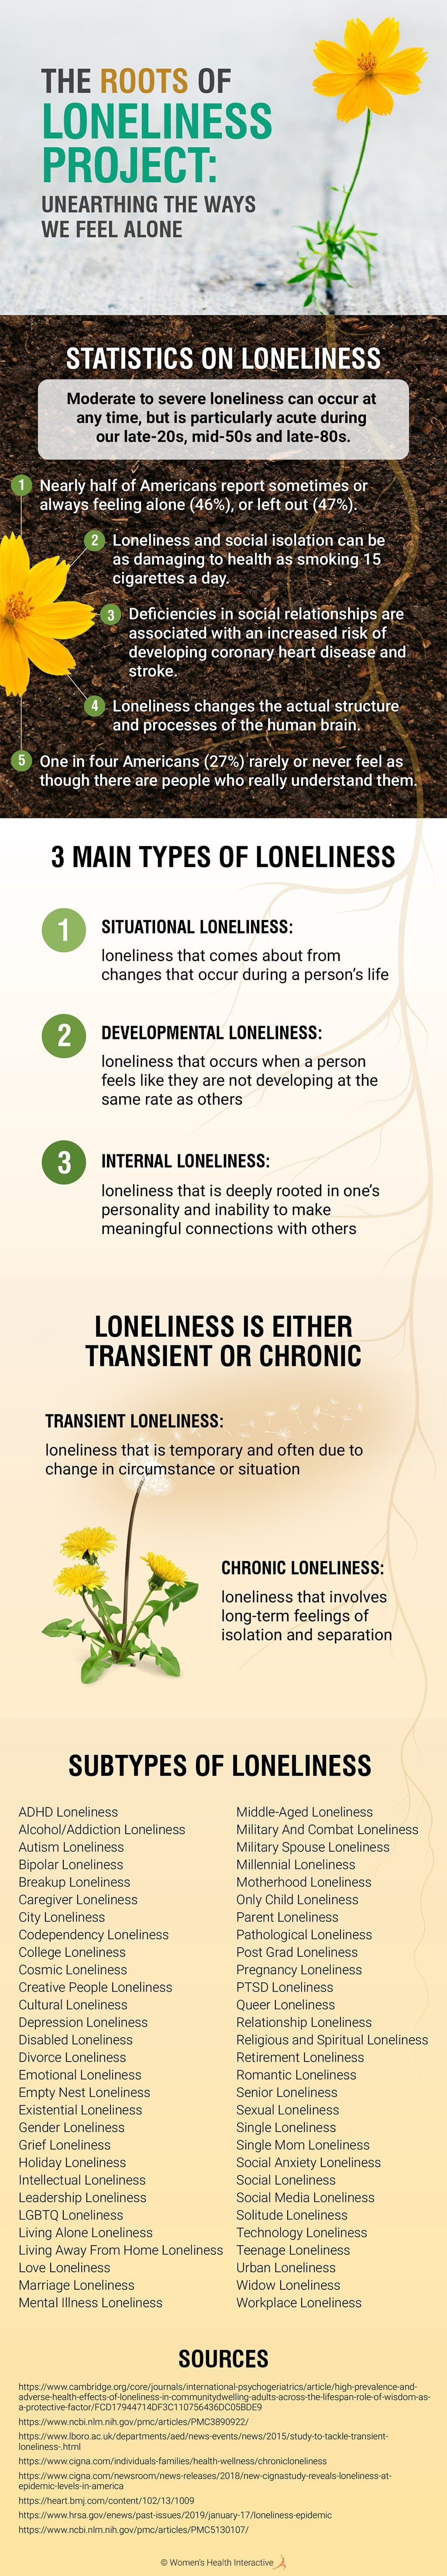 The Roots Of Loneliness Project: Unearthing Why We Feel Alone #infographic